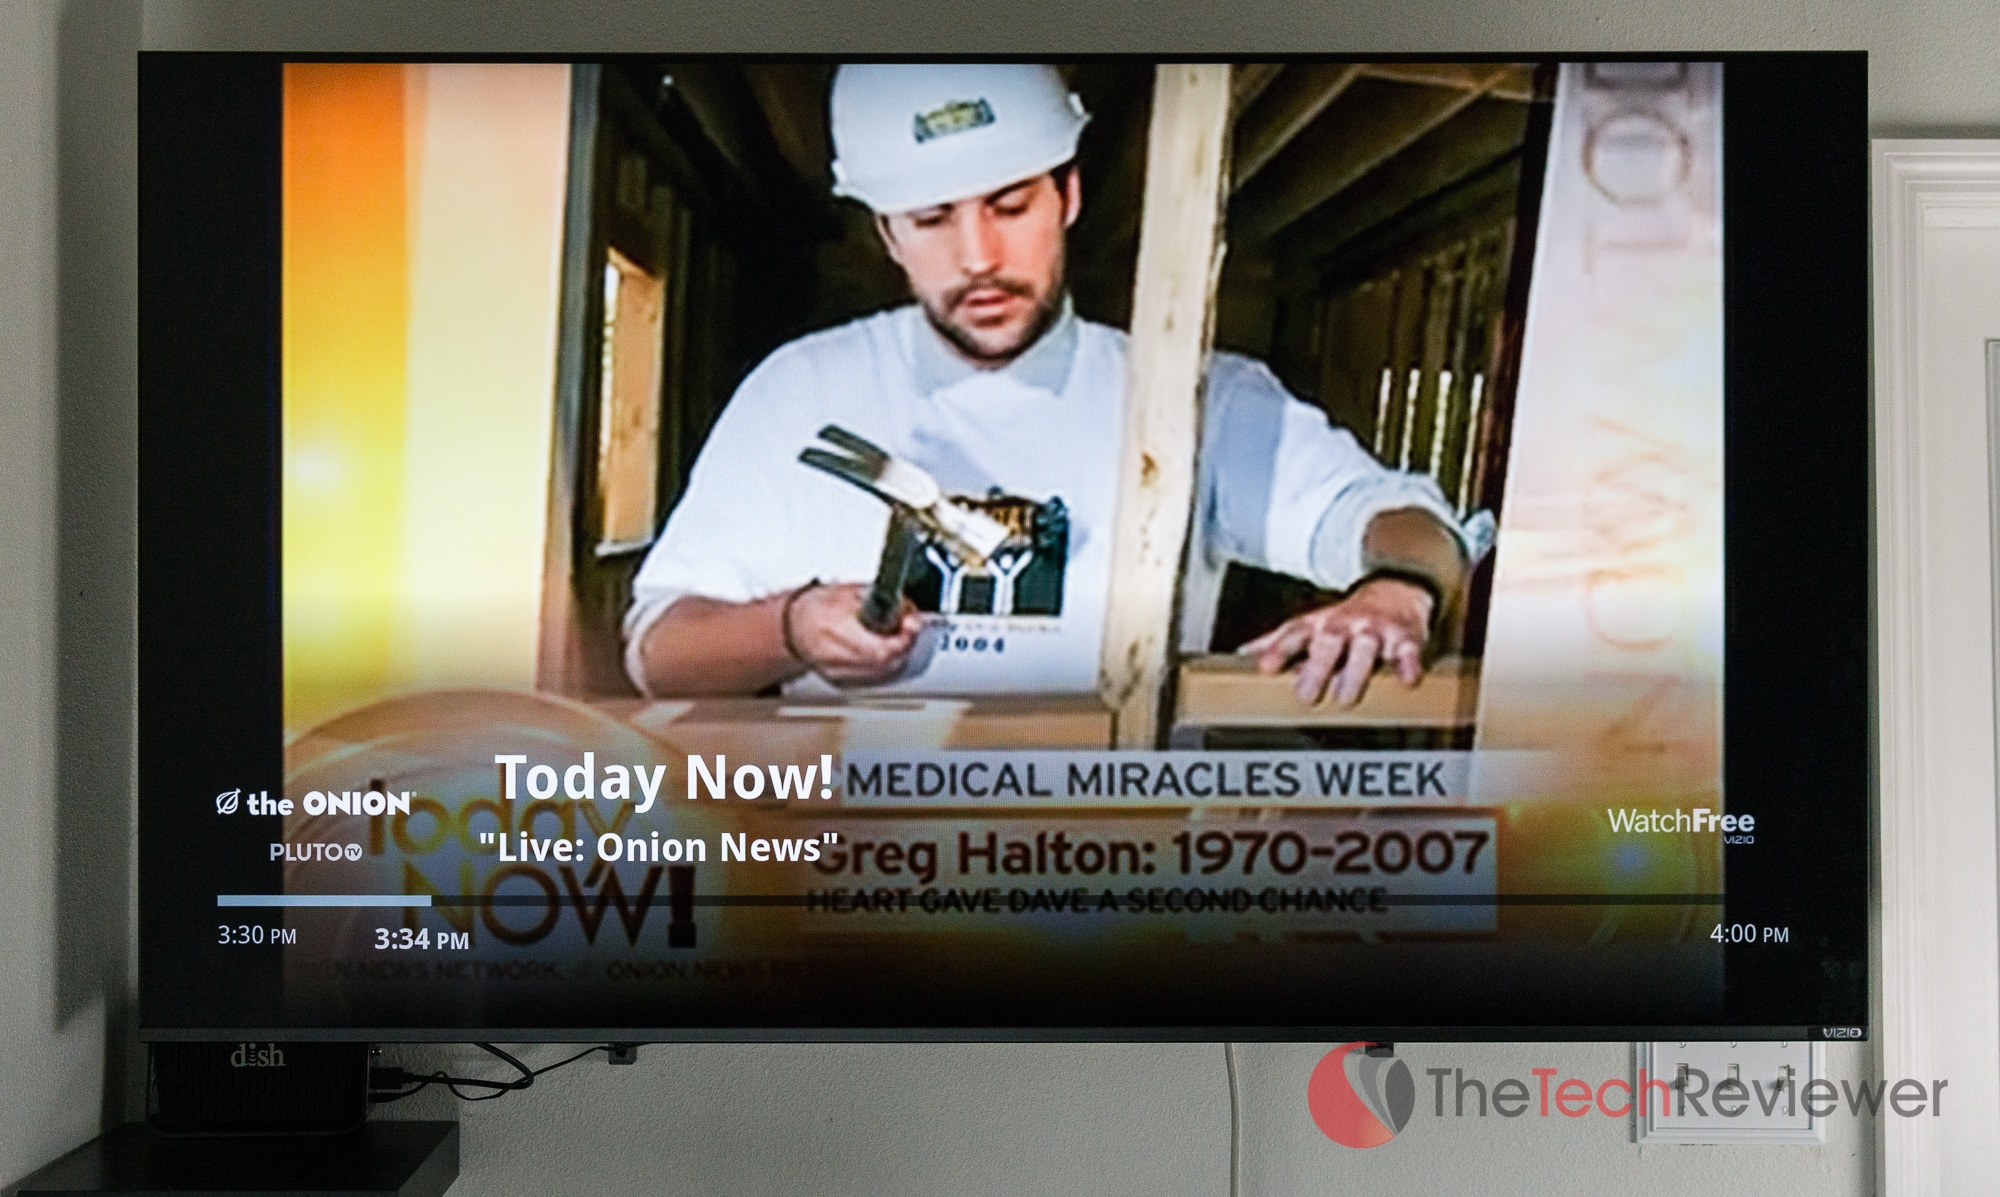 The Onion's Channel On PlutoTV via WatchFree